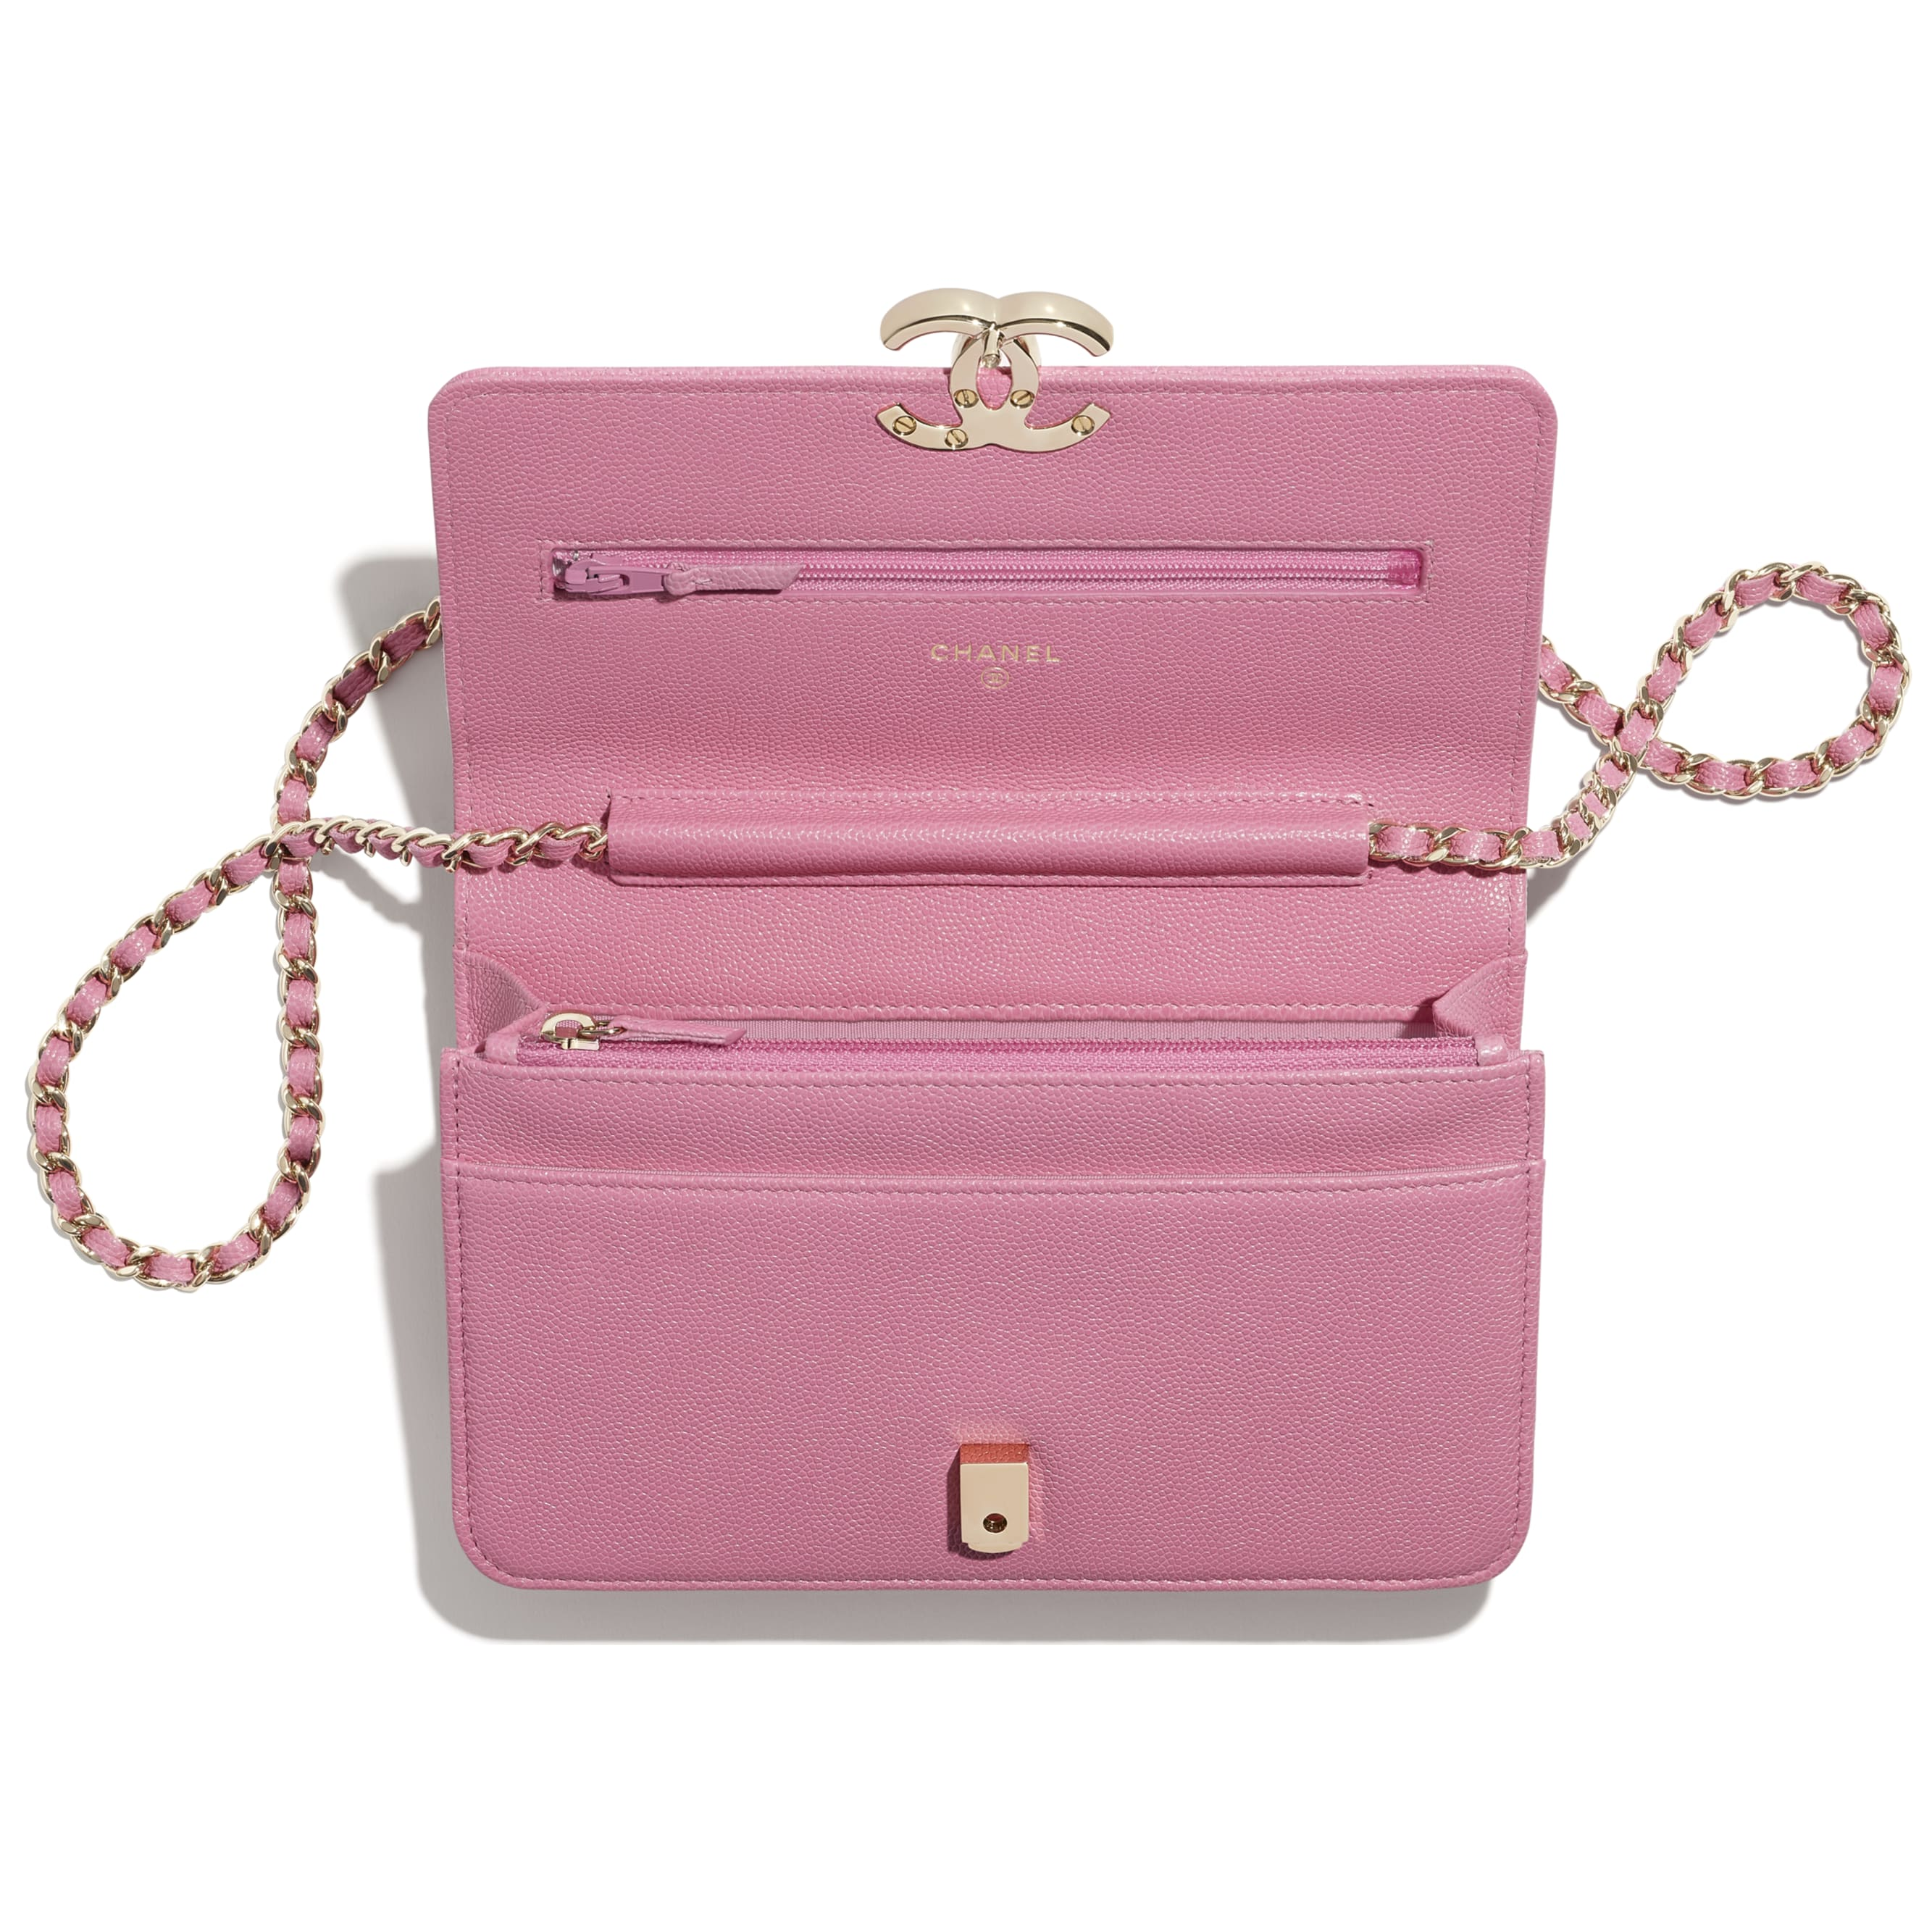 Wallet On Chain - Pink - Grained Calfskin & Gold-Tone Metal - CHANEL - Alternative view - see standard sized version